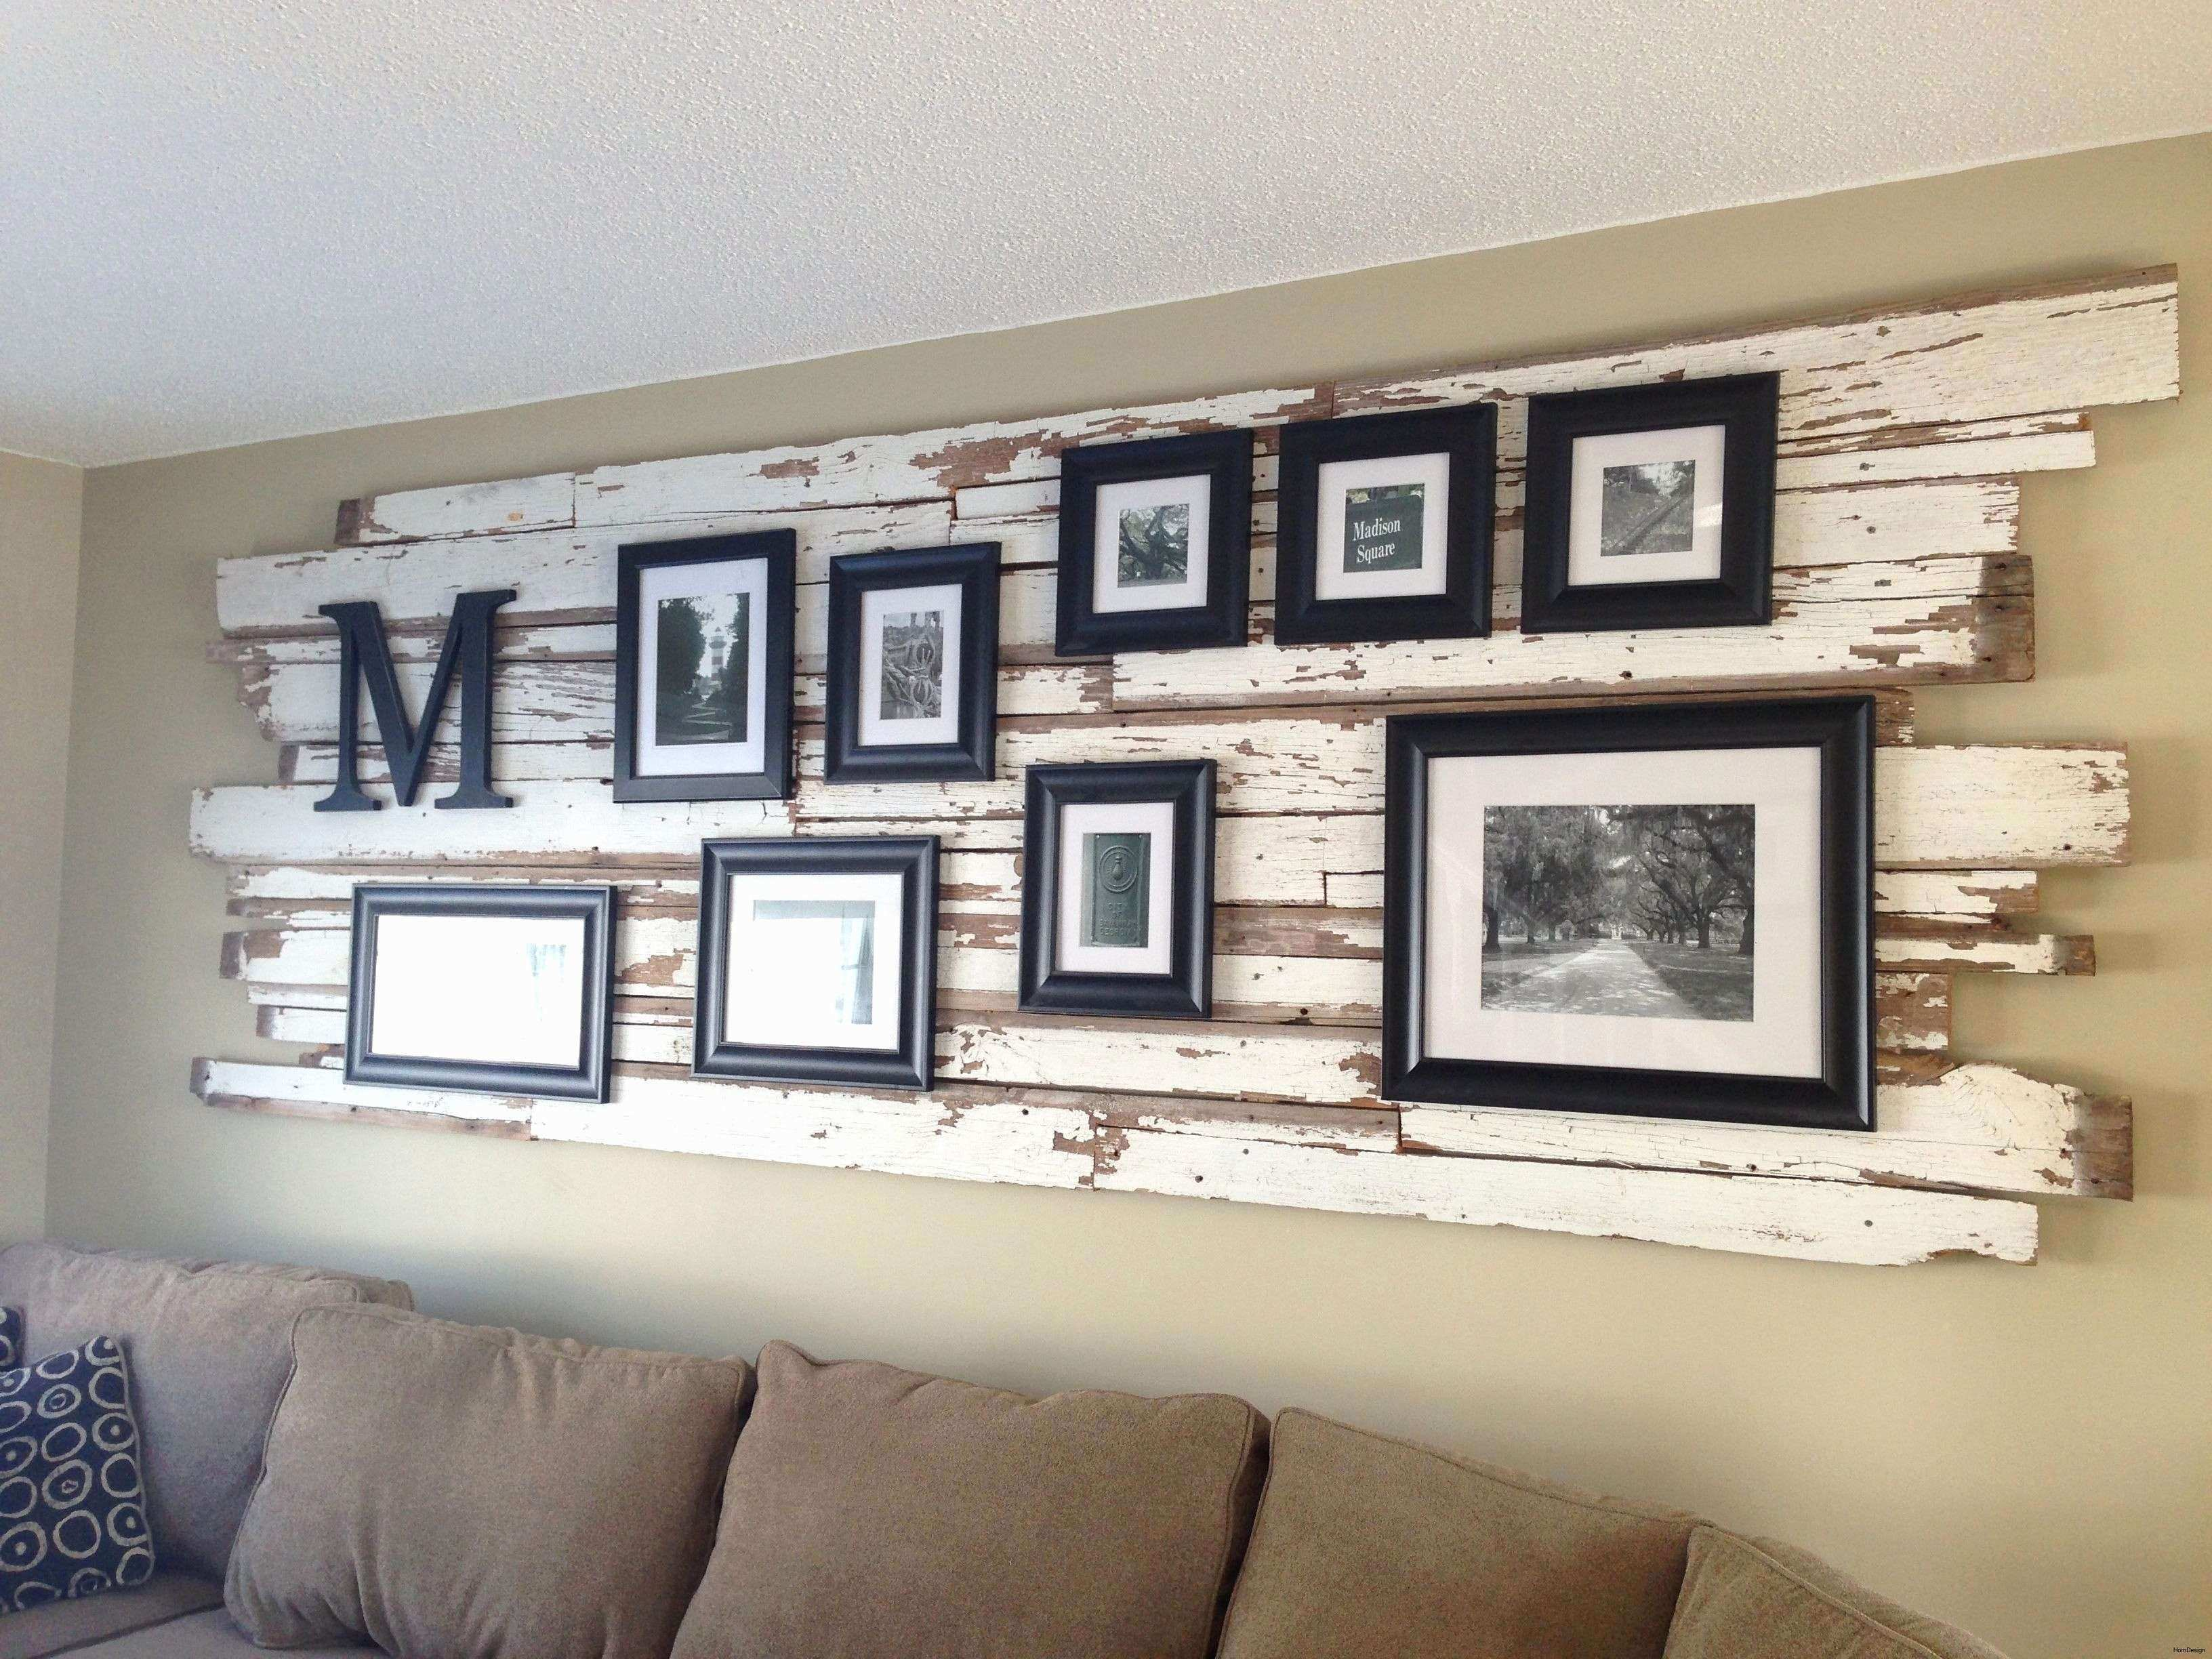 Awesome Paris Wall Decor for Bedroom HopeLodgeUtah